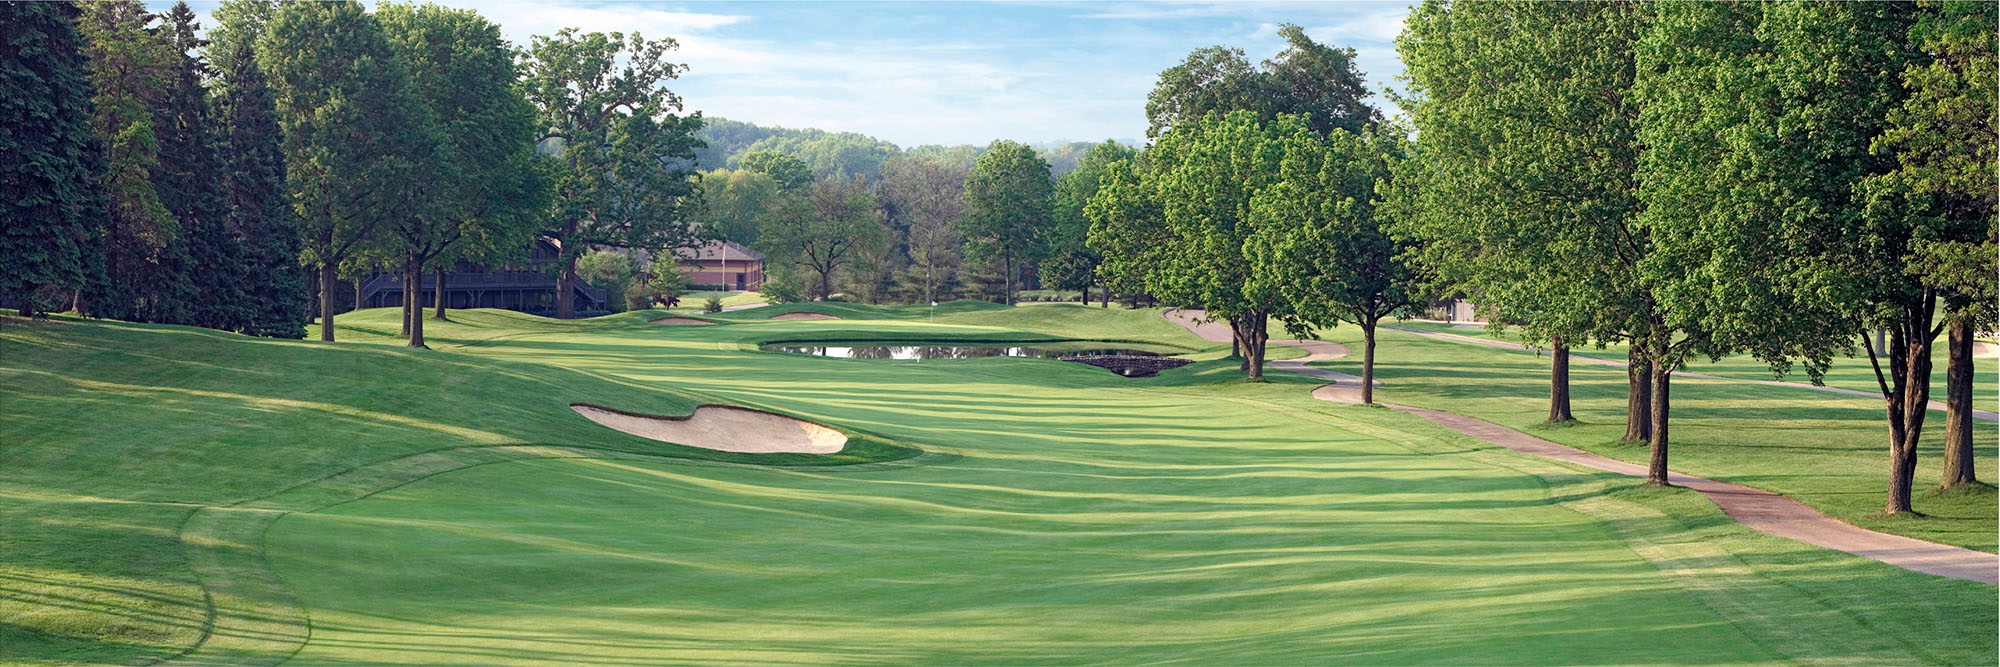 Golf Course Image - Firestone South No. 16